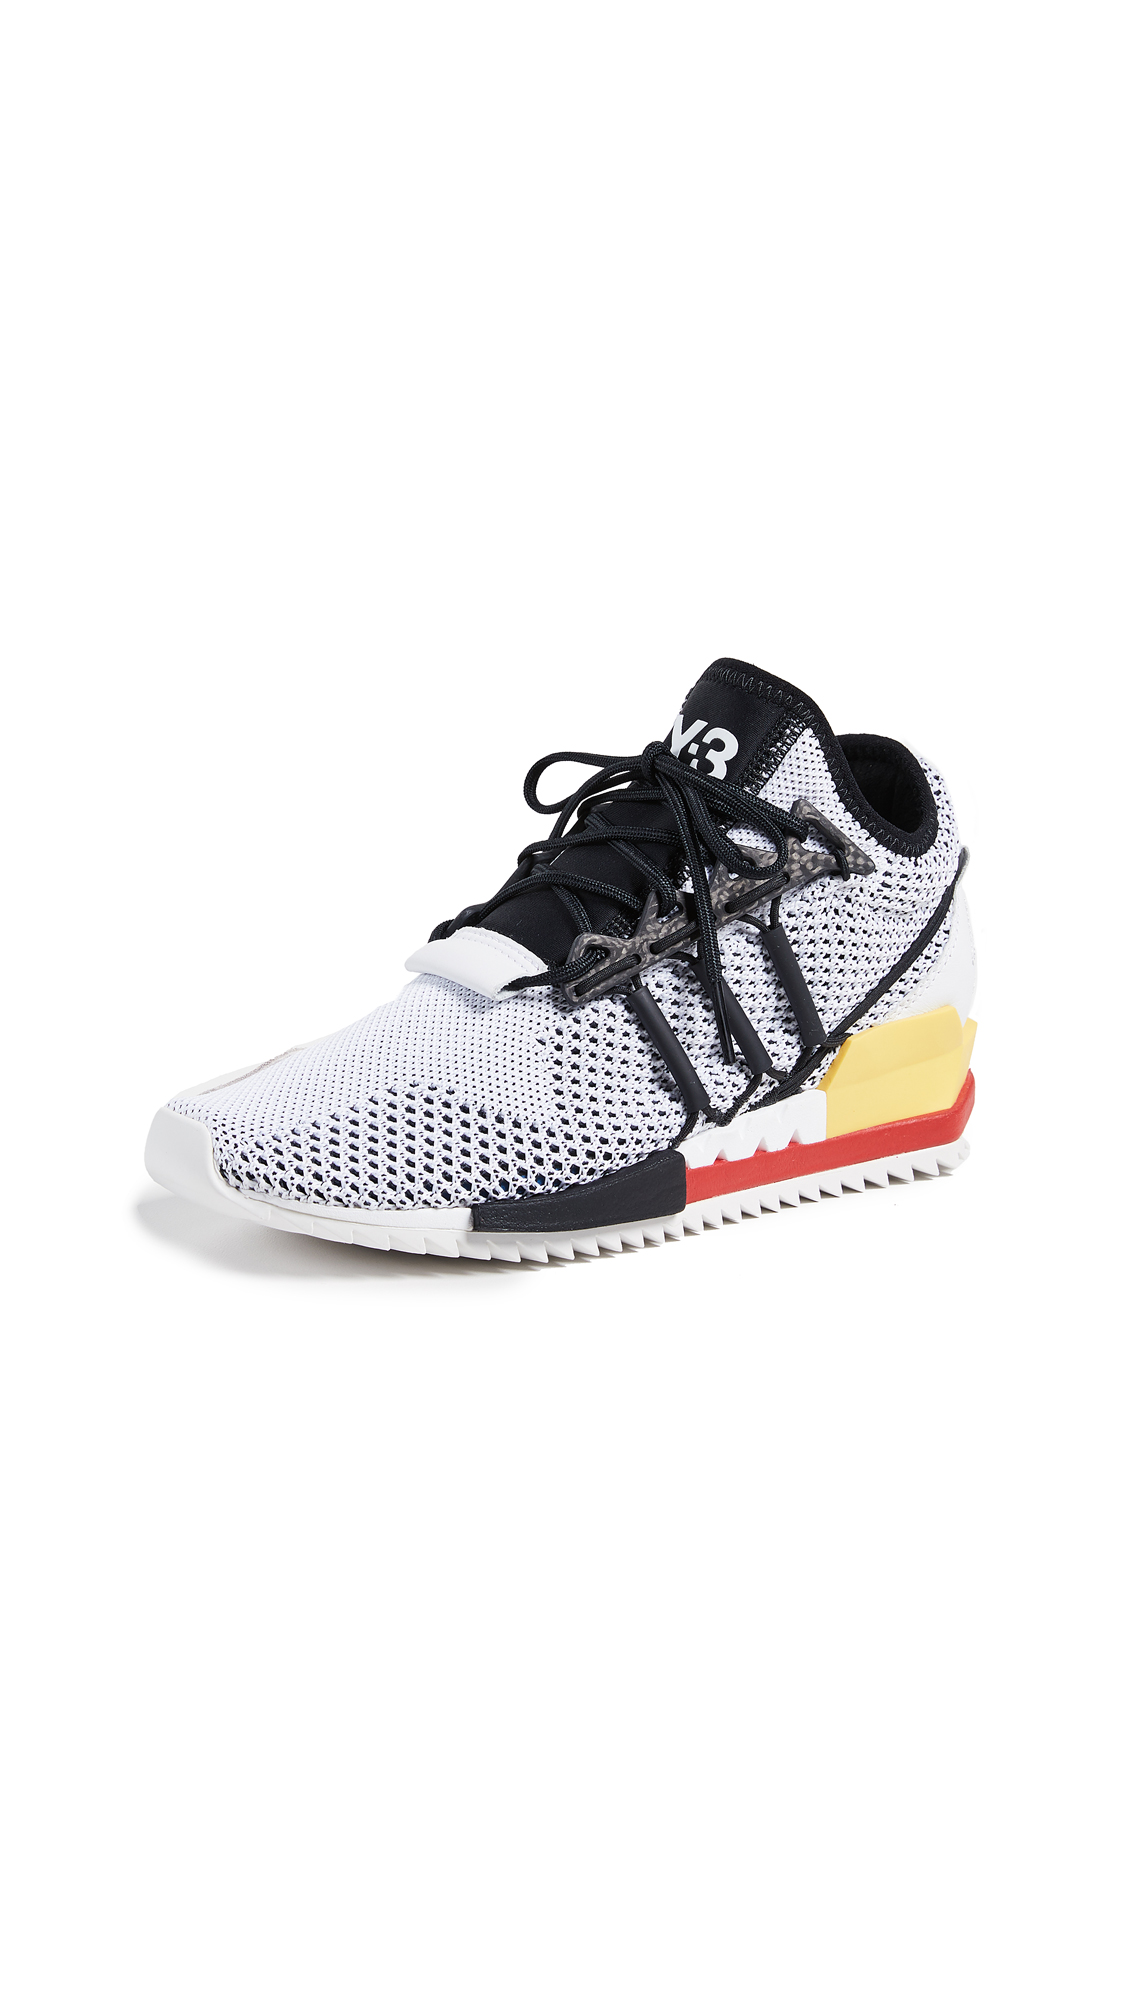 Y-3 Harigane Sneakers - White/Black/Red